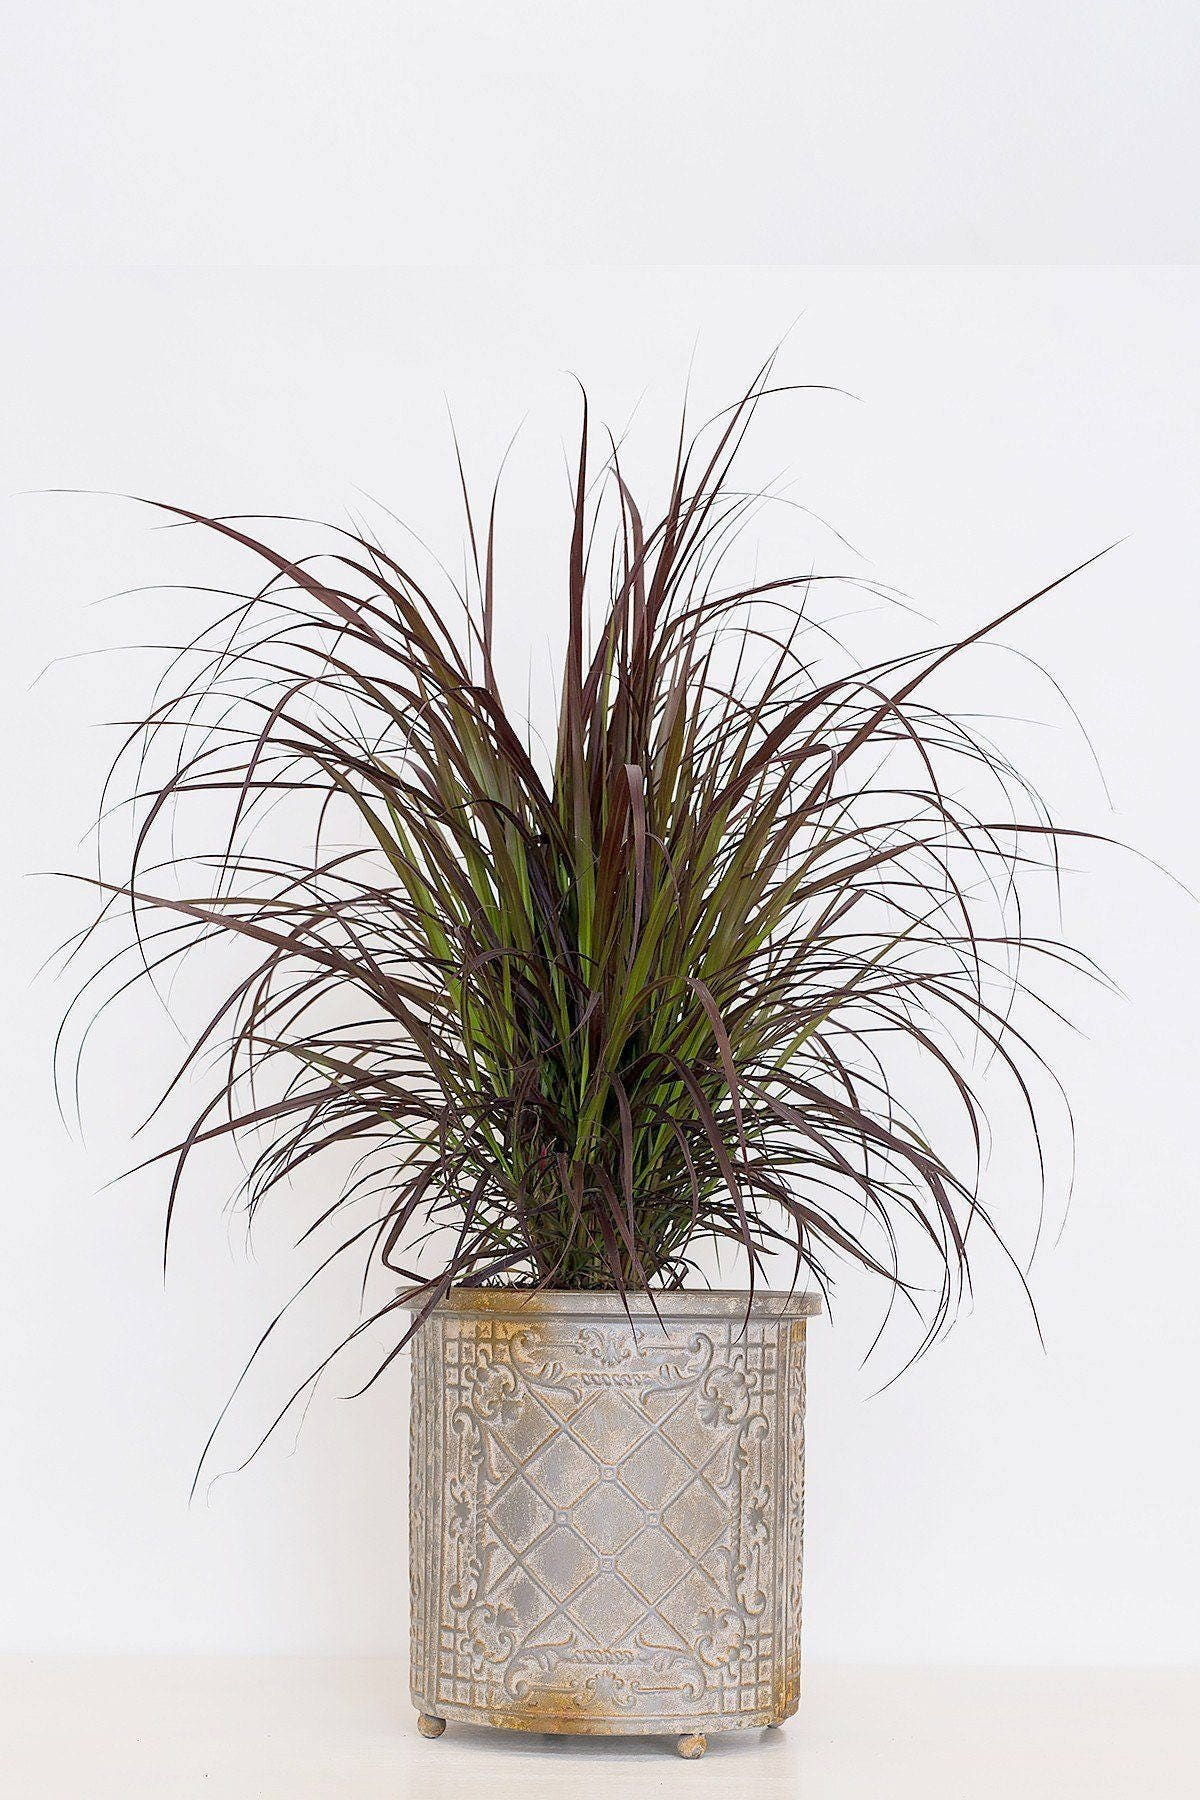 Purple Fountain Grass Ornamental Grass Rose Pink Plumes Etsy